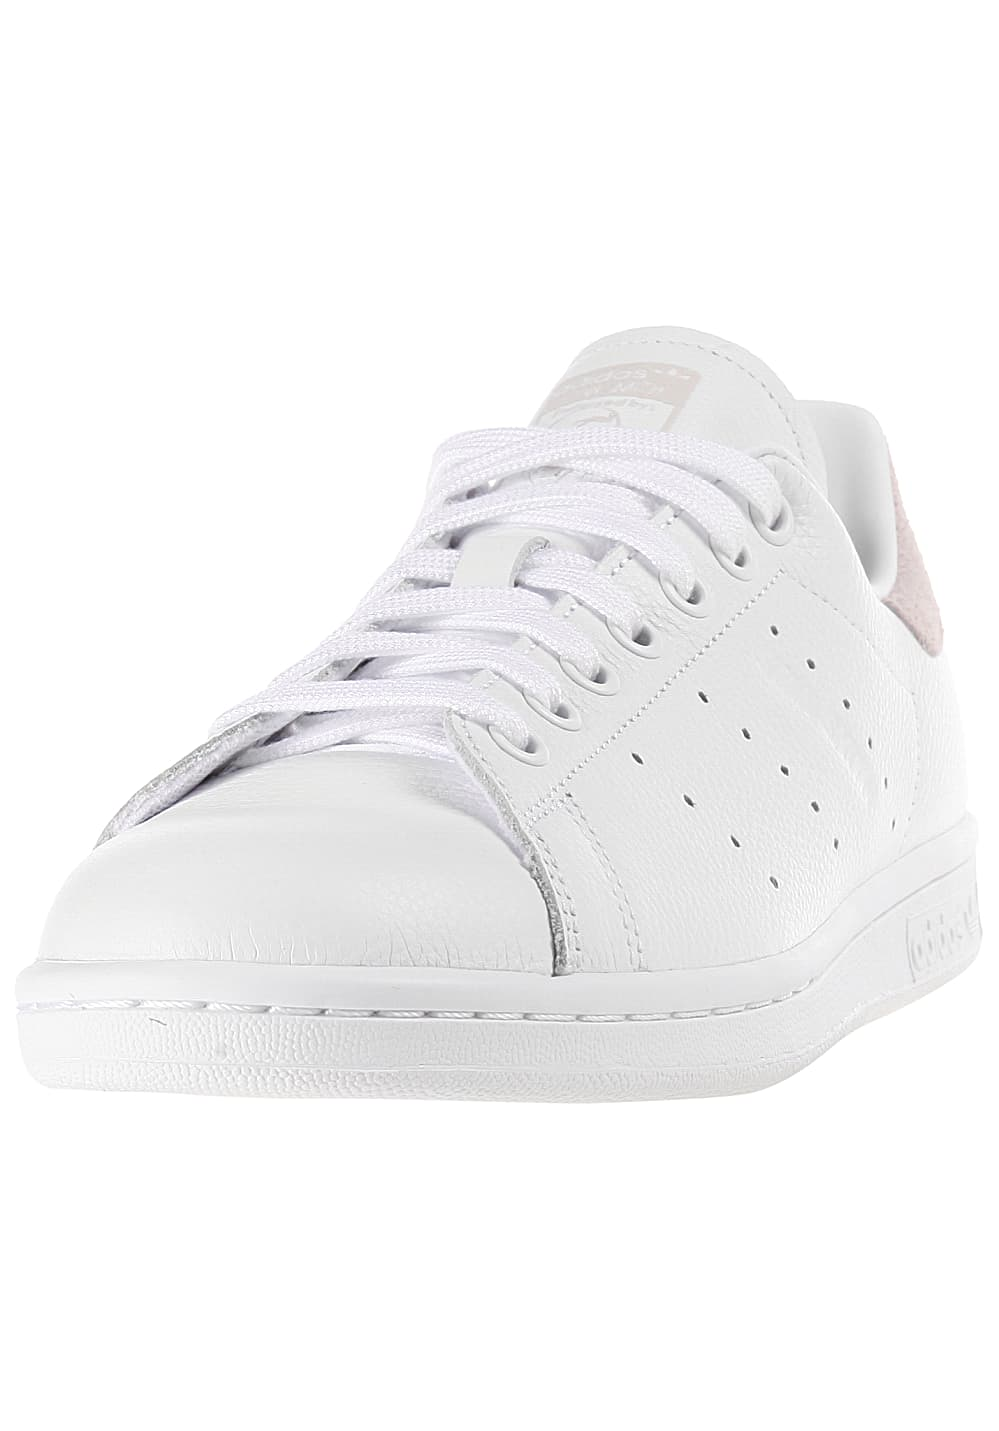 best loved 9cb7a a3b04 adidas Originals Stan Smith - Sneaker für Damen - Weiß